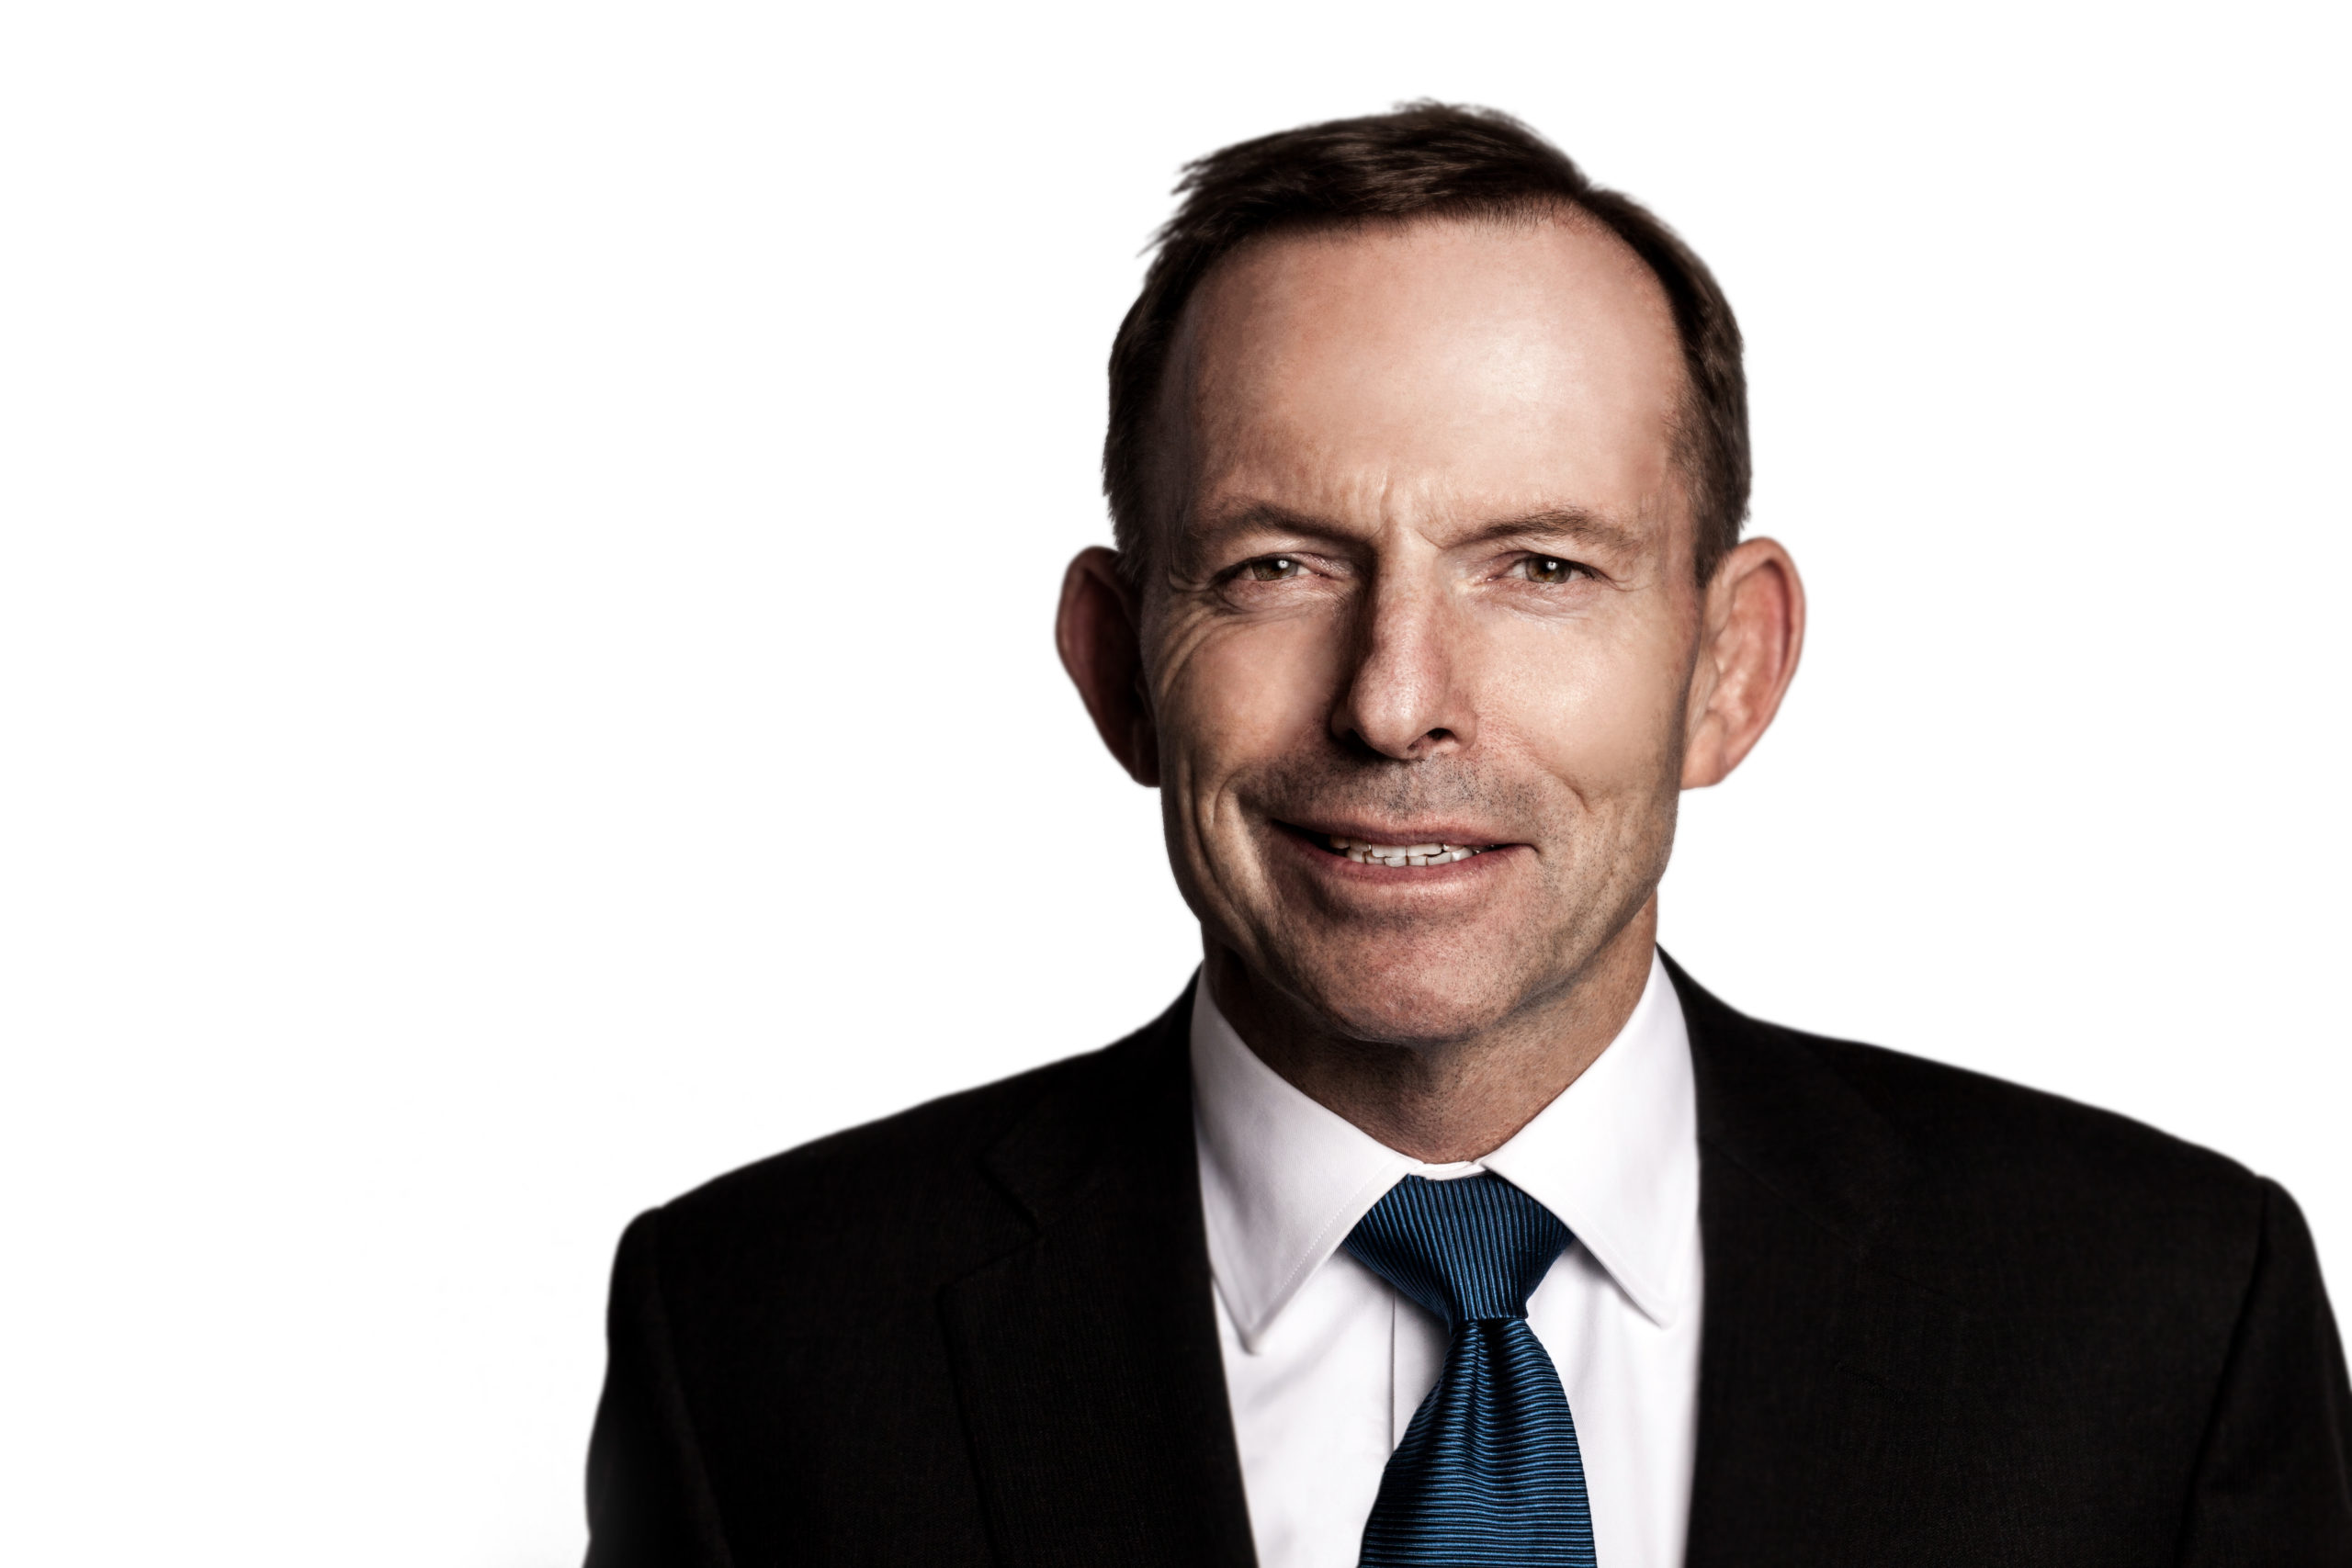 Public Value and the Future of Public Policy, in conversation with Hon Tony Abbott